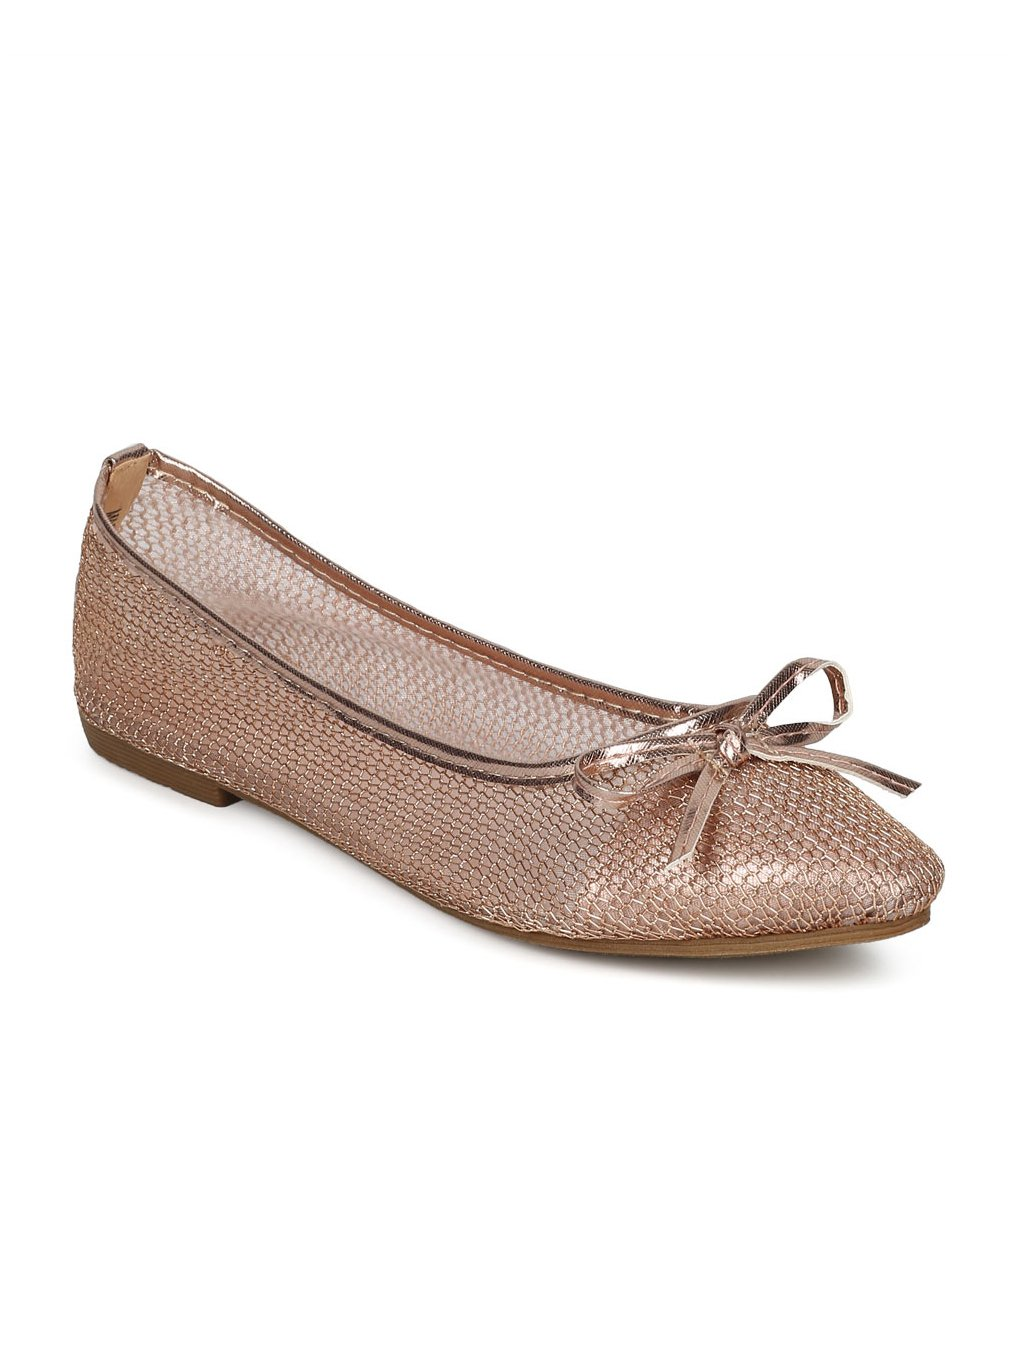 Indulge Dew-1-A Women Mesh Capped Toe Bow Tie Ballet Flat HE04 - Rose Gold Mix Media (Size: 7.0)